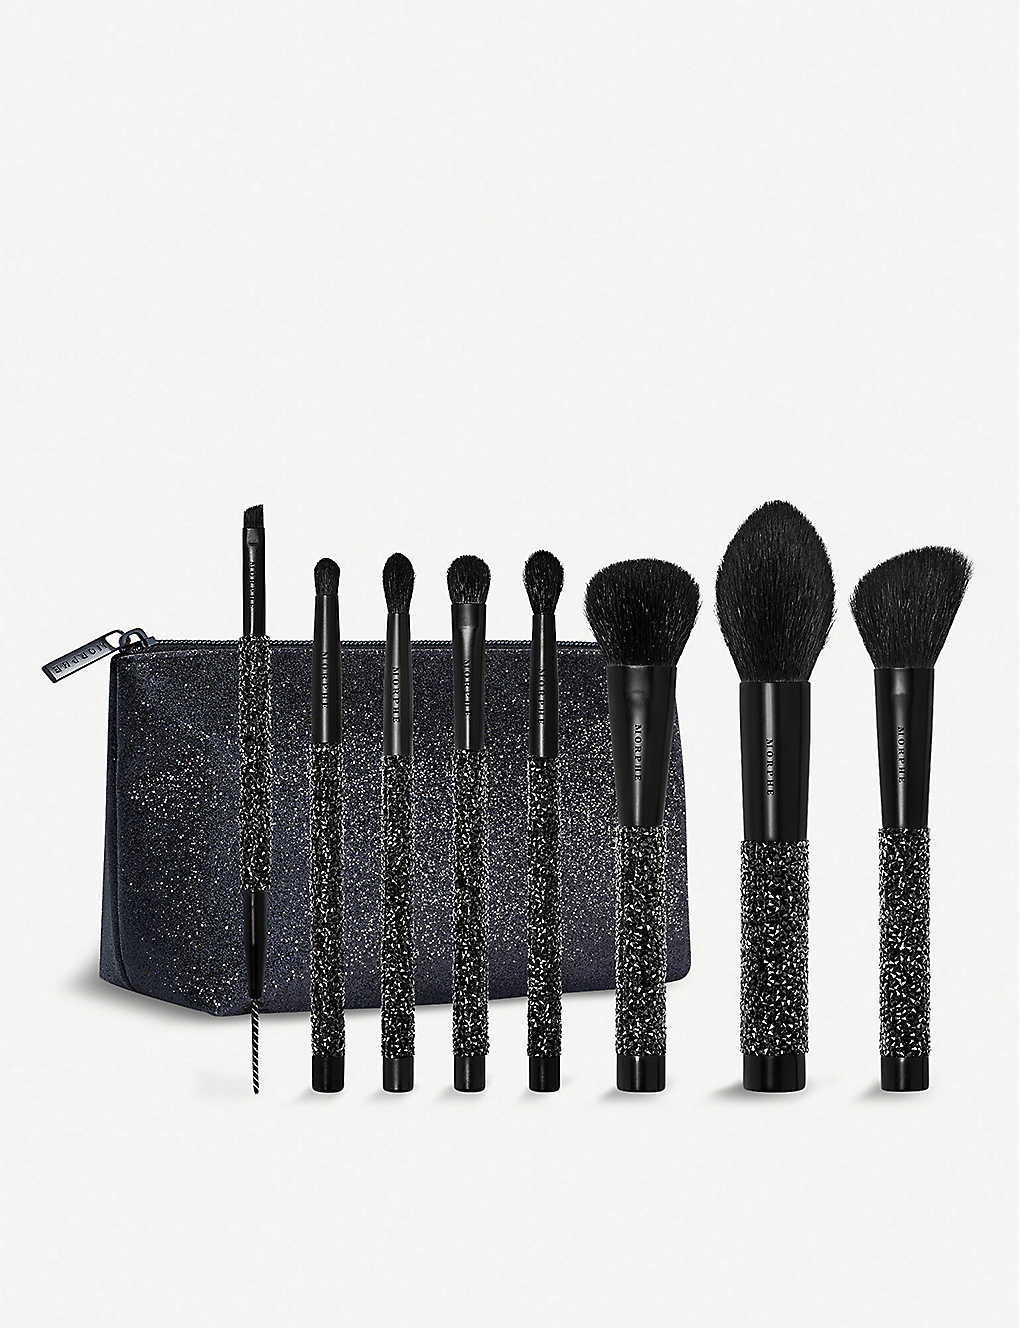 MORPHE: The Bling Fling 8-Piece Brush Collection